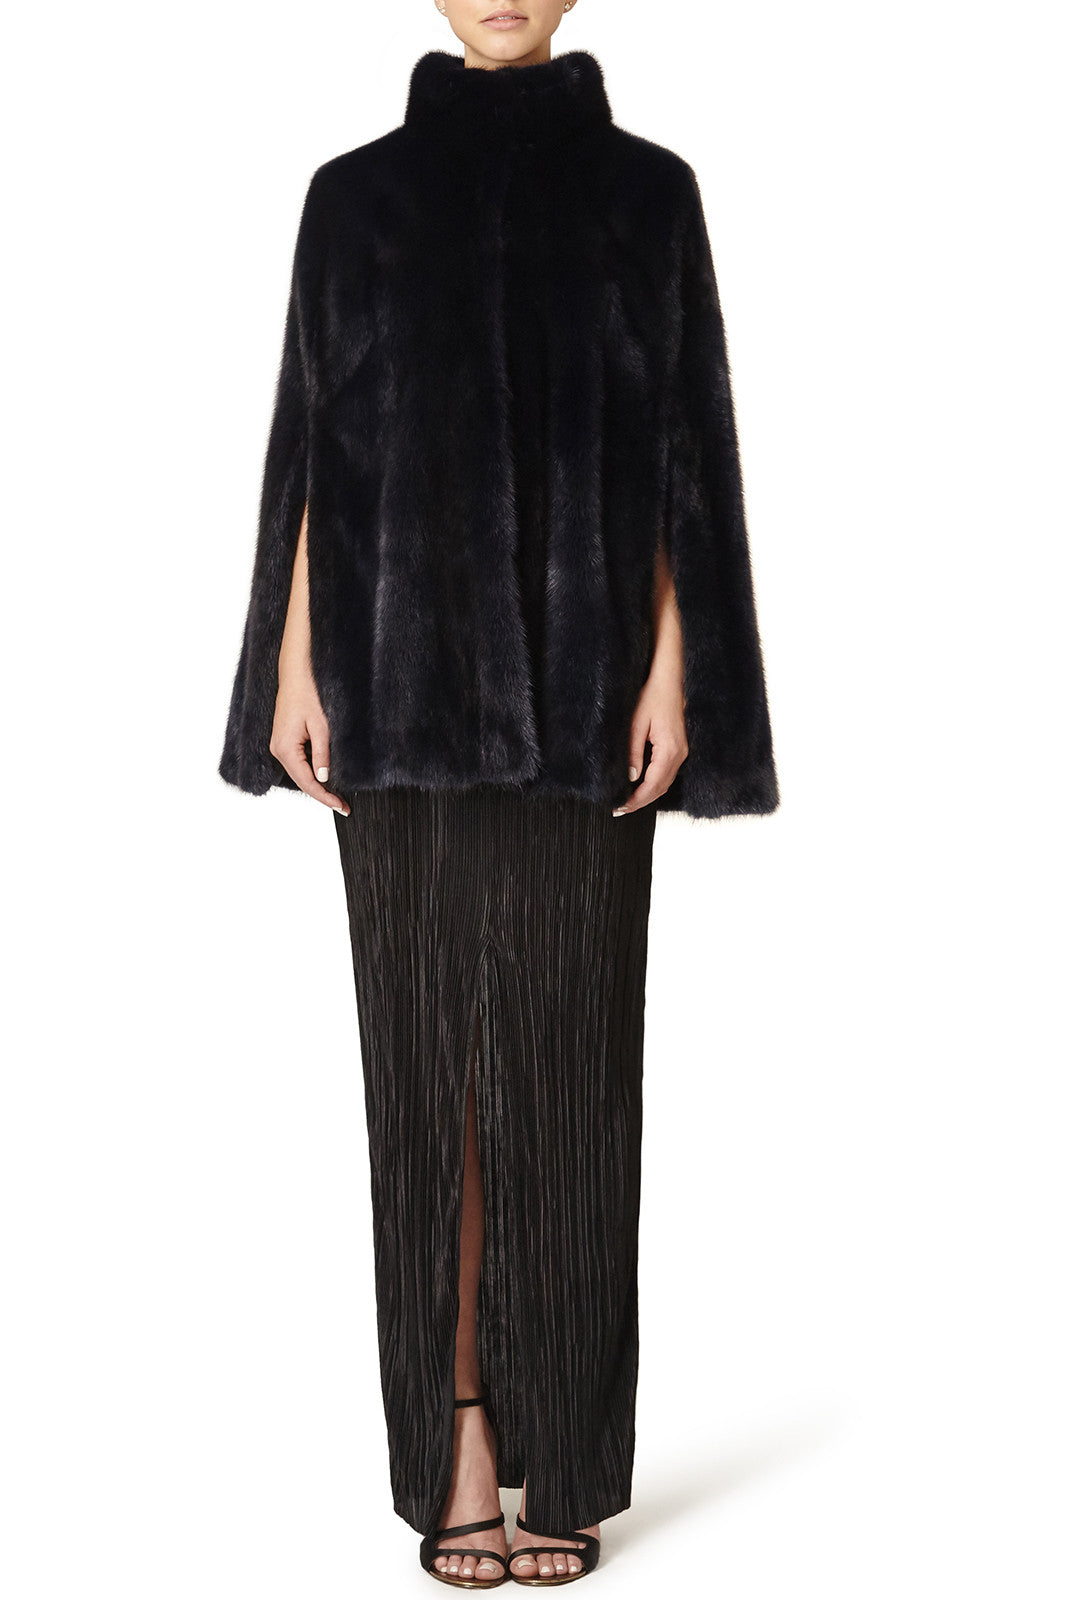 maria womens mink cape with collar Blu 2